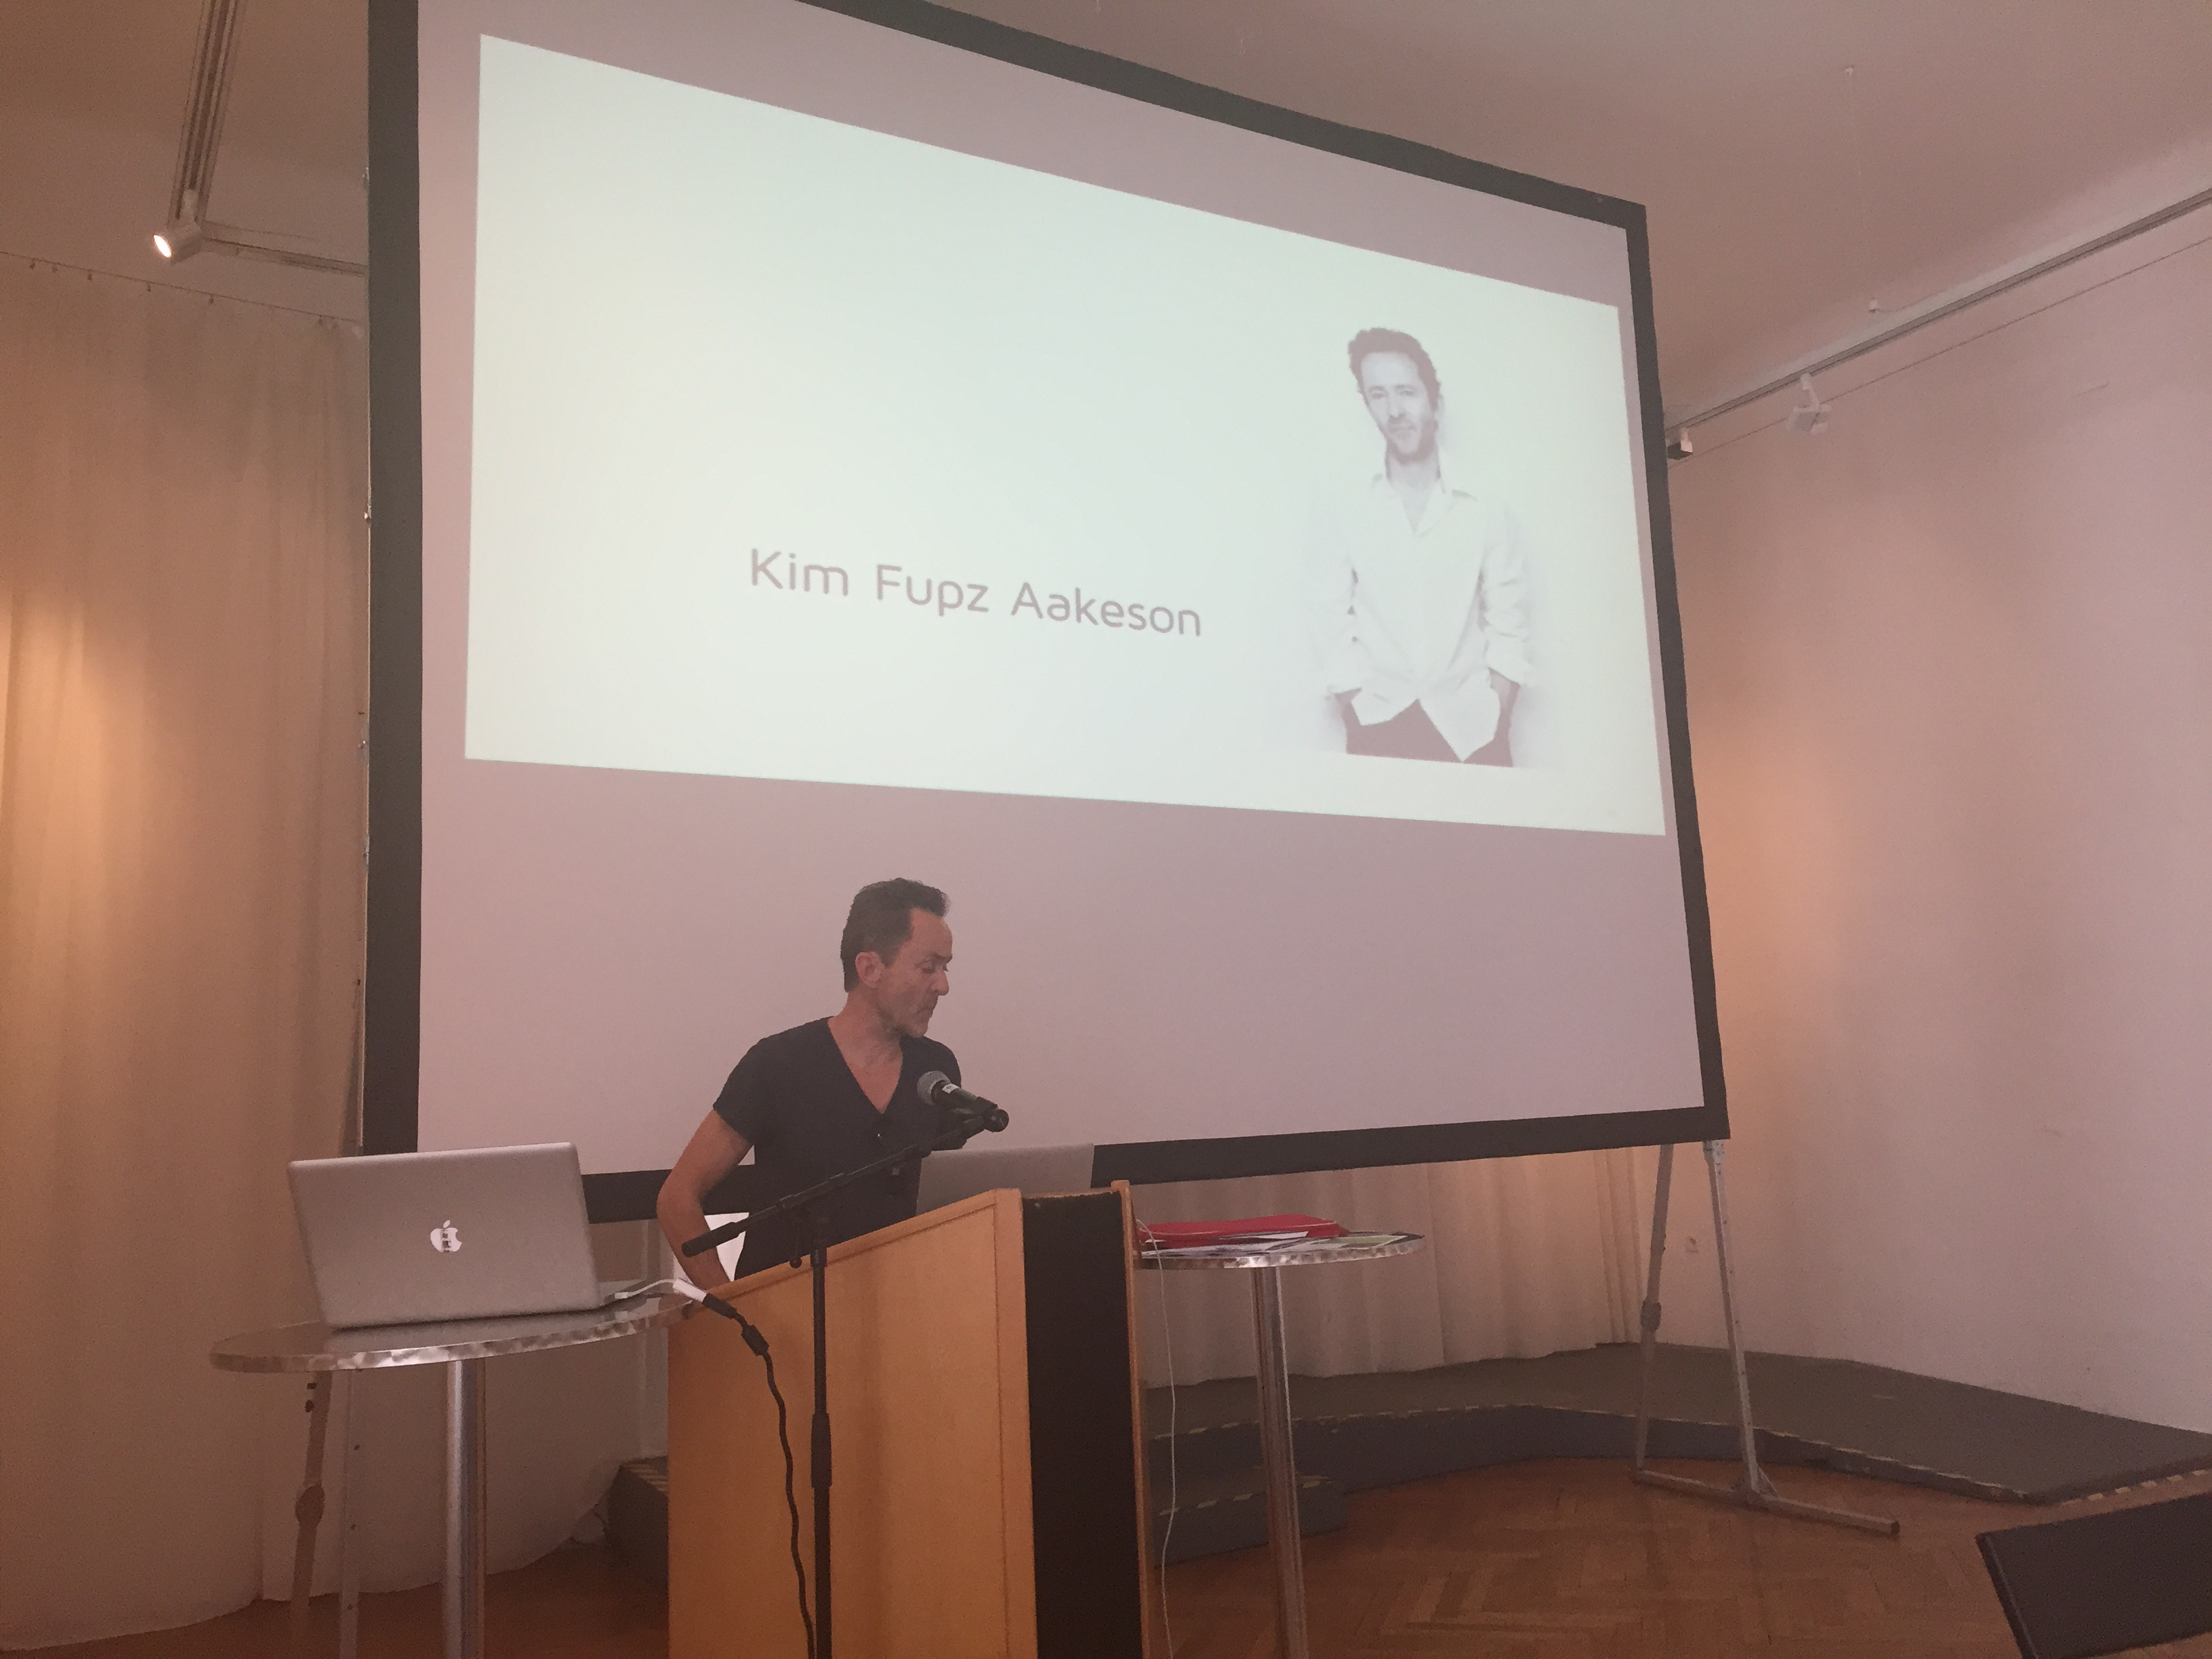 Kim Fupz Aakeson explains what makes a good story